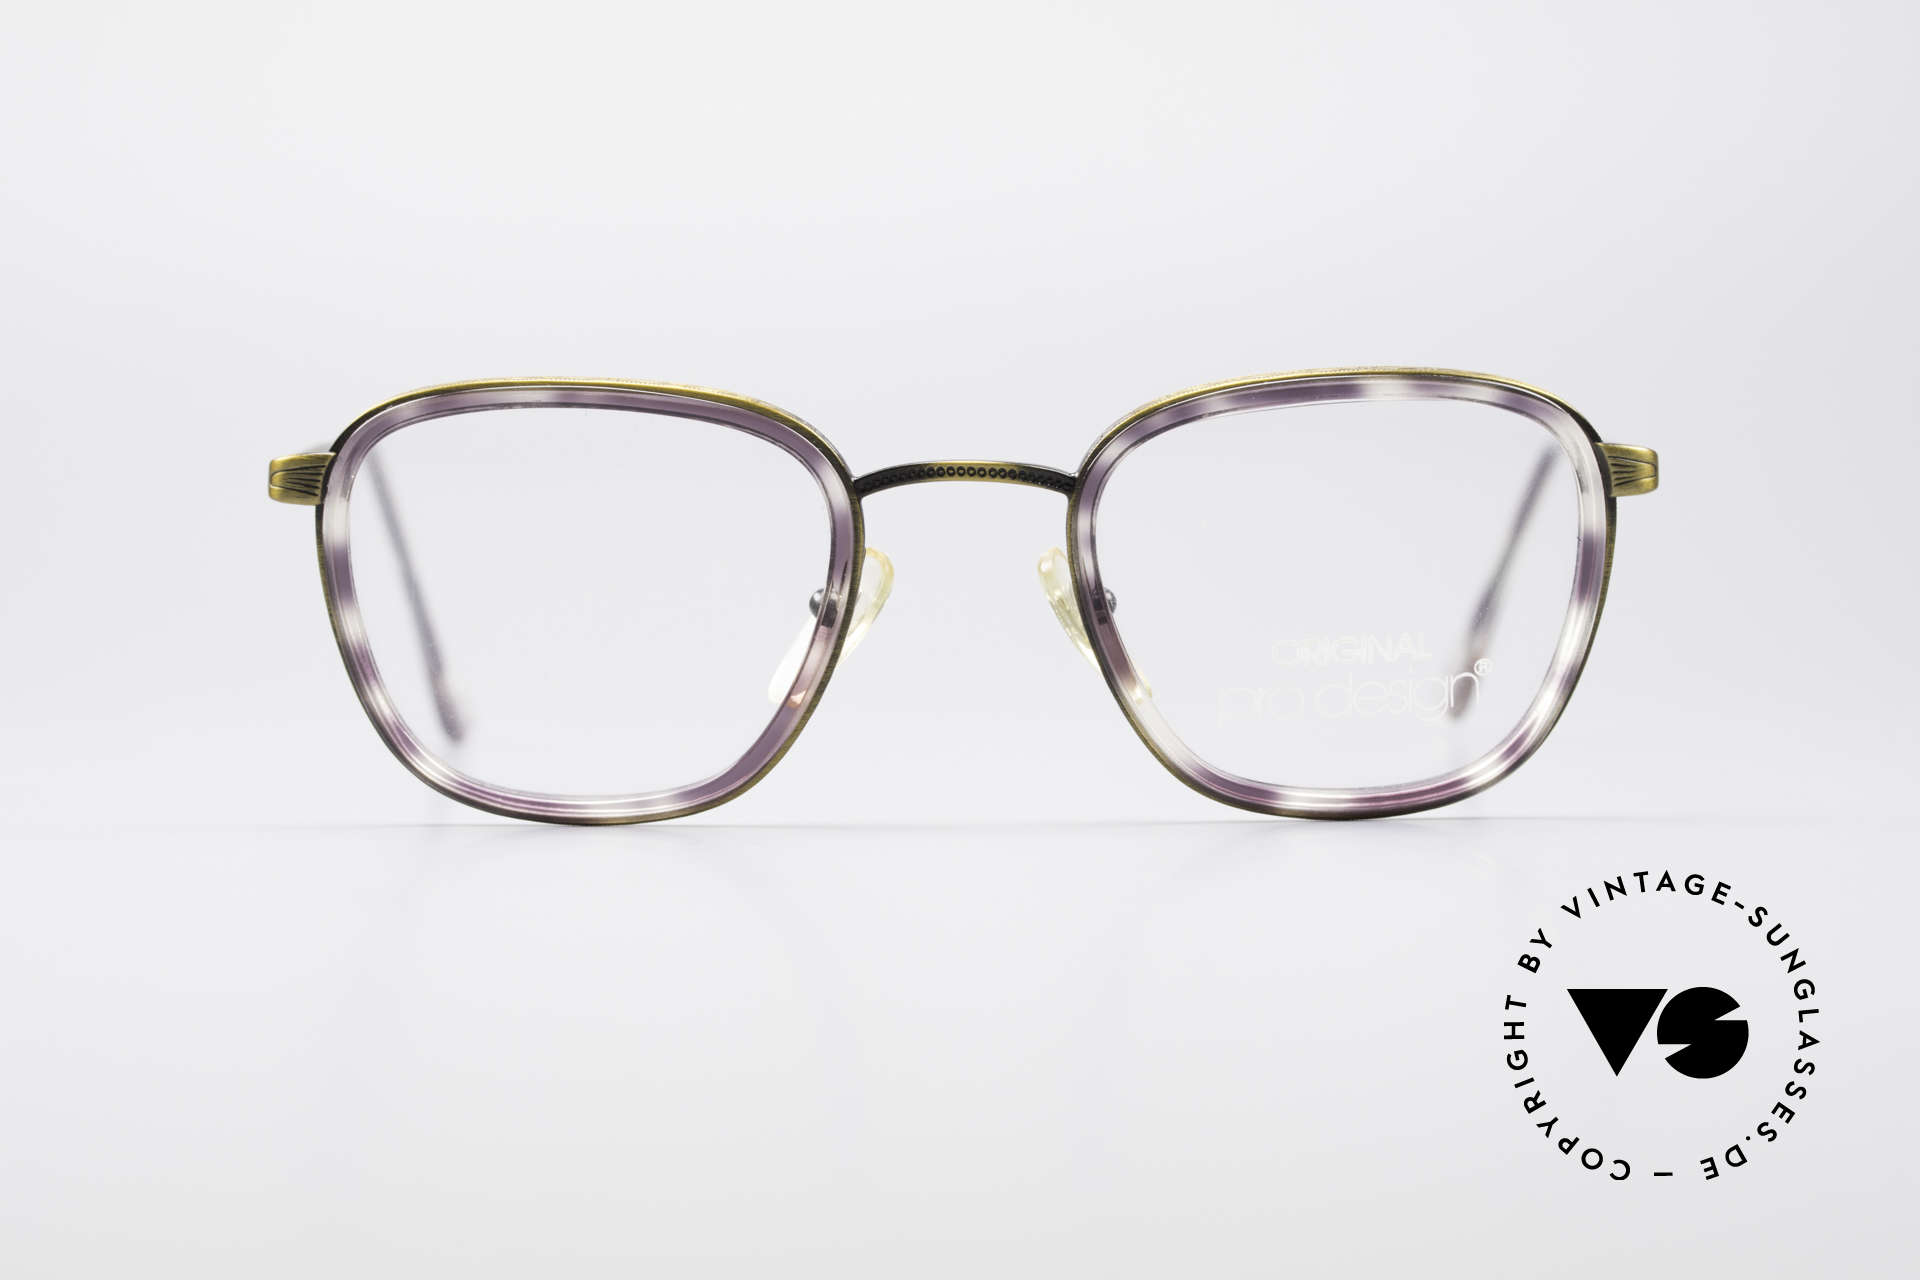 f9cf520b8258 Glasses ProDesign Denmark Club 88A Vintage Glasses